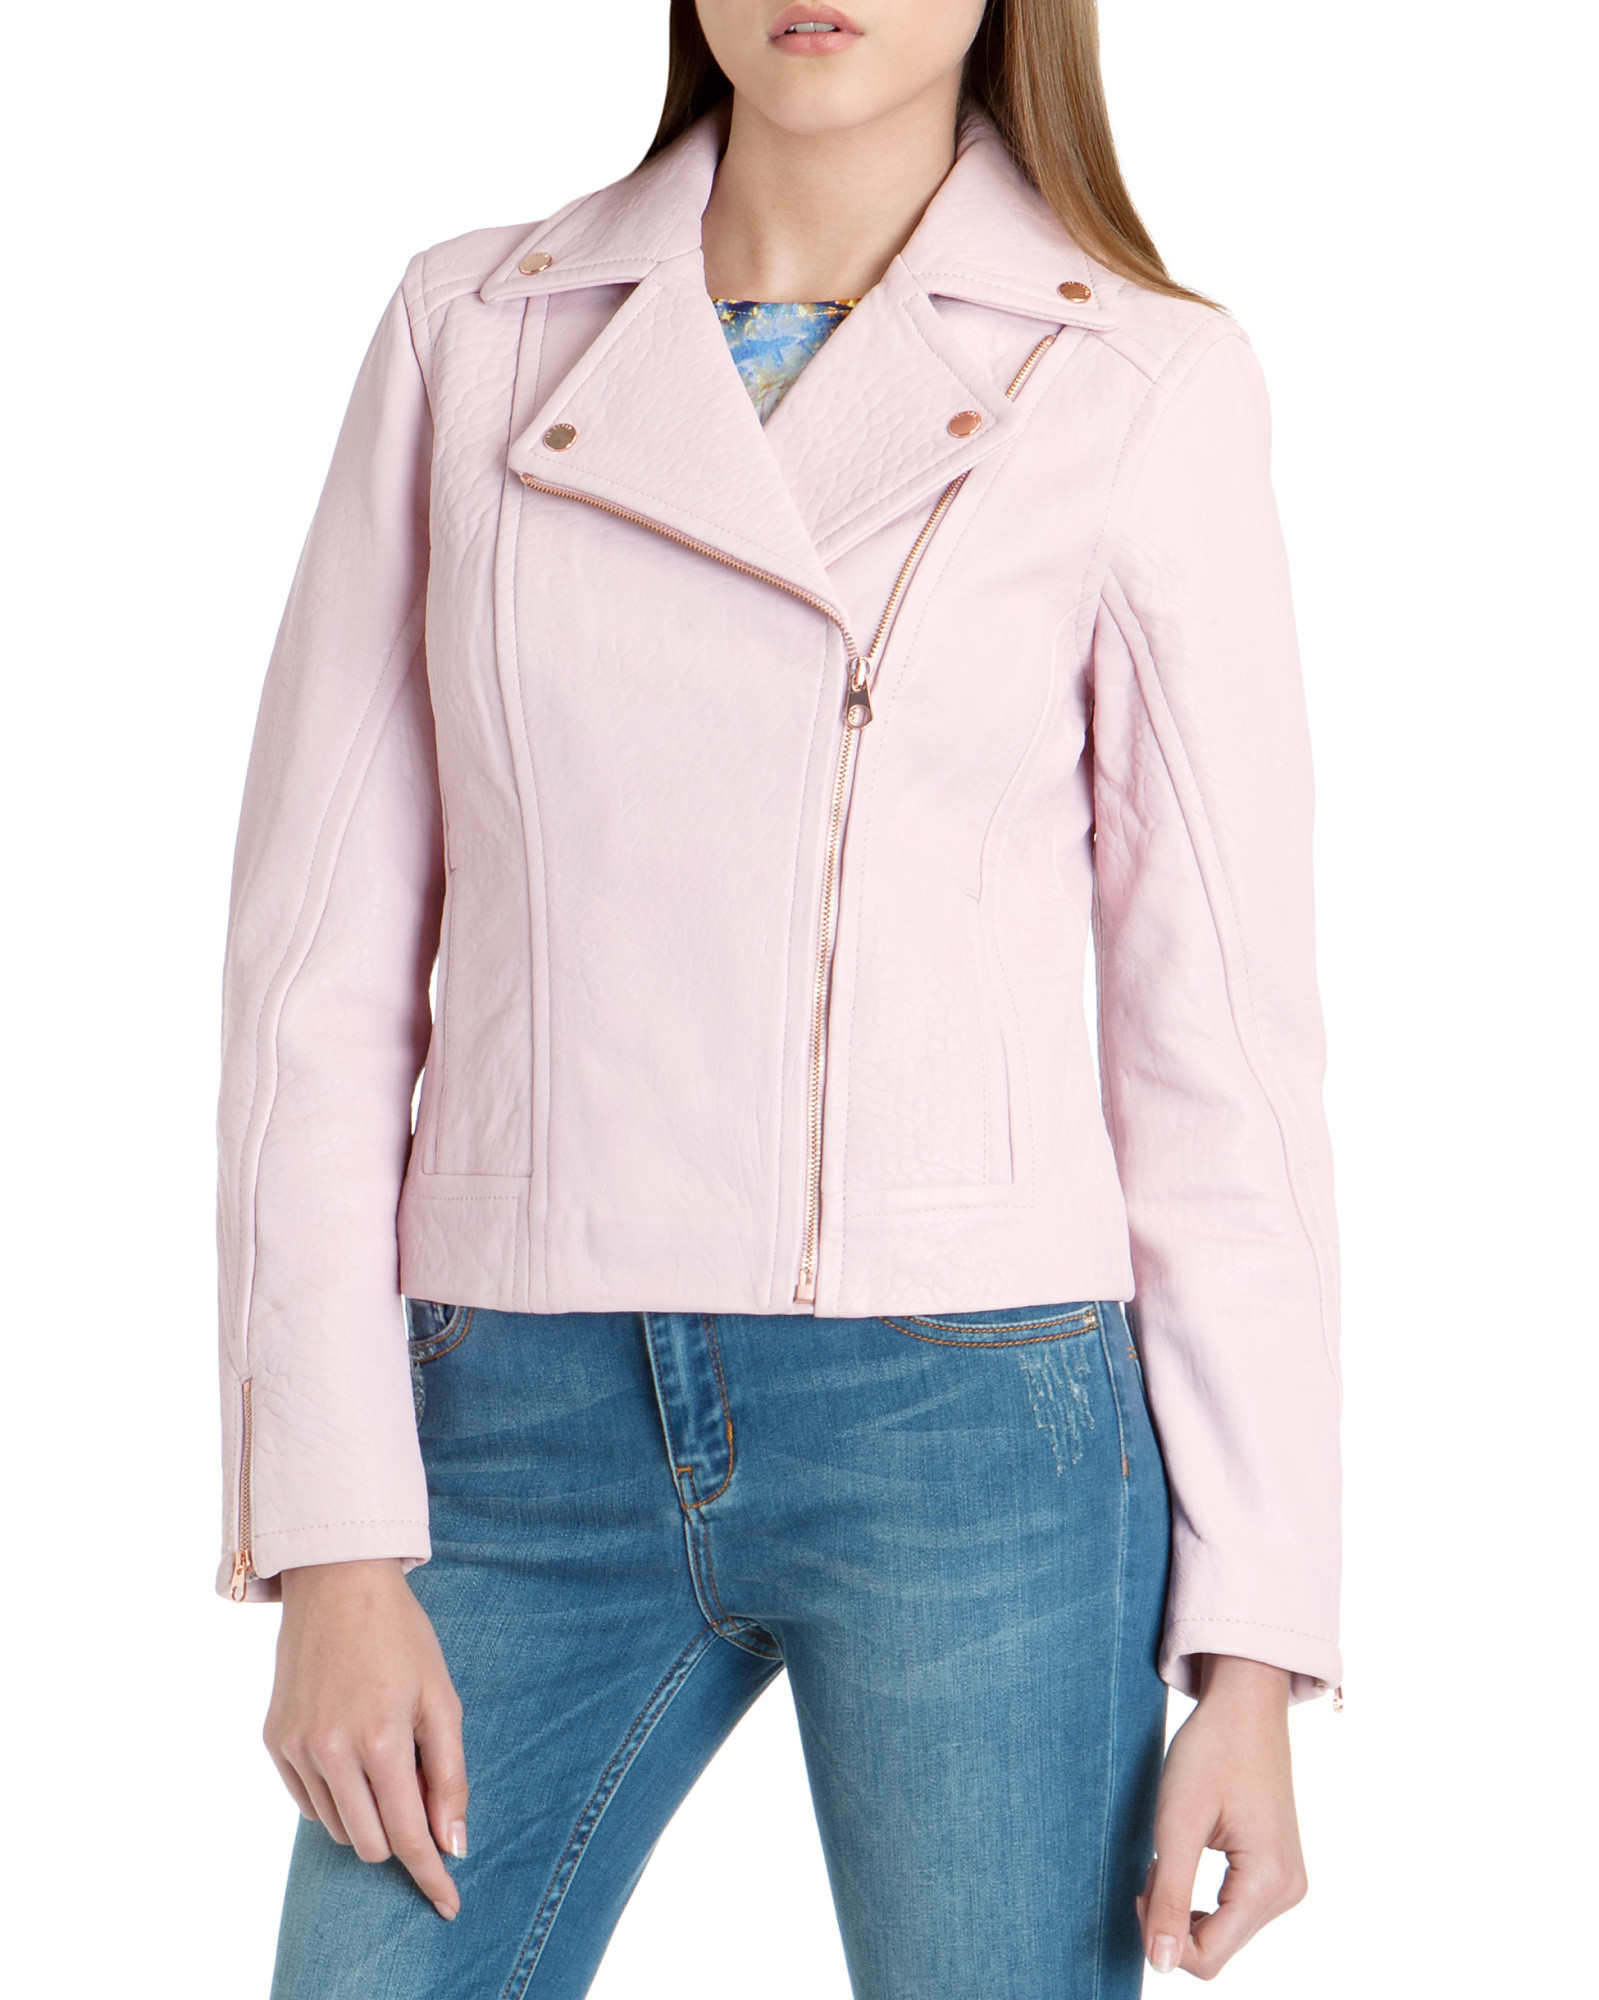 79e1c6135b4c8 Ted Baker Coty Leather Biker Jacket in Pink - Lyst